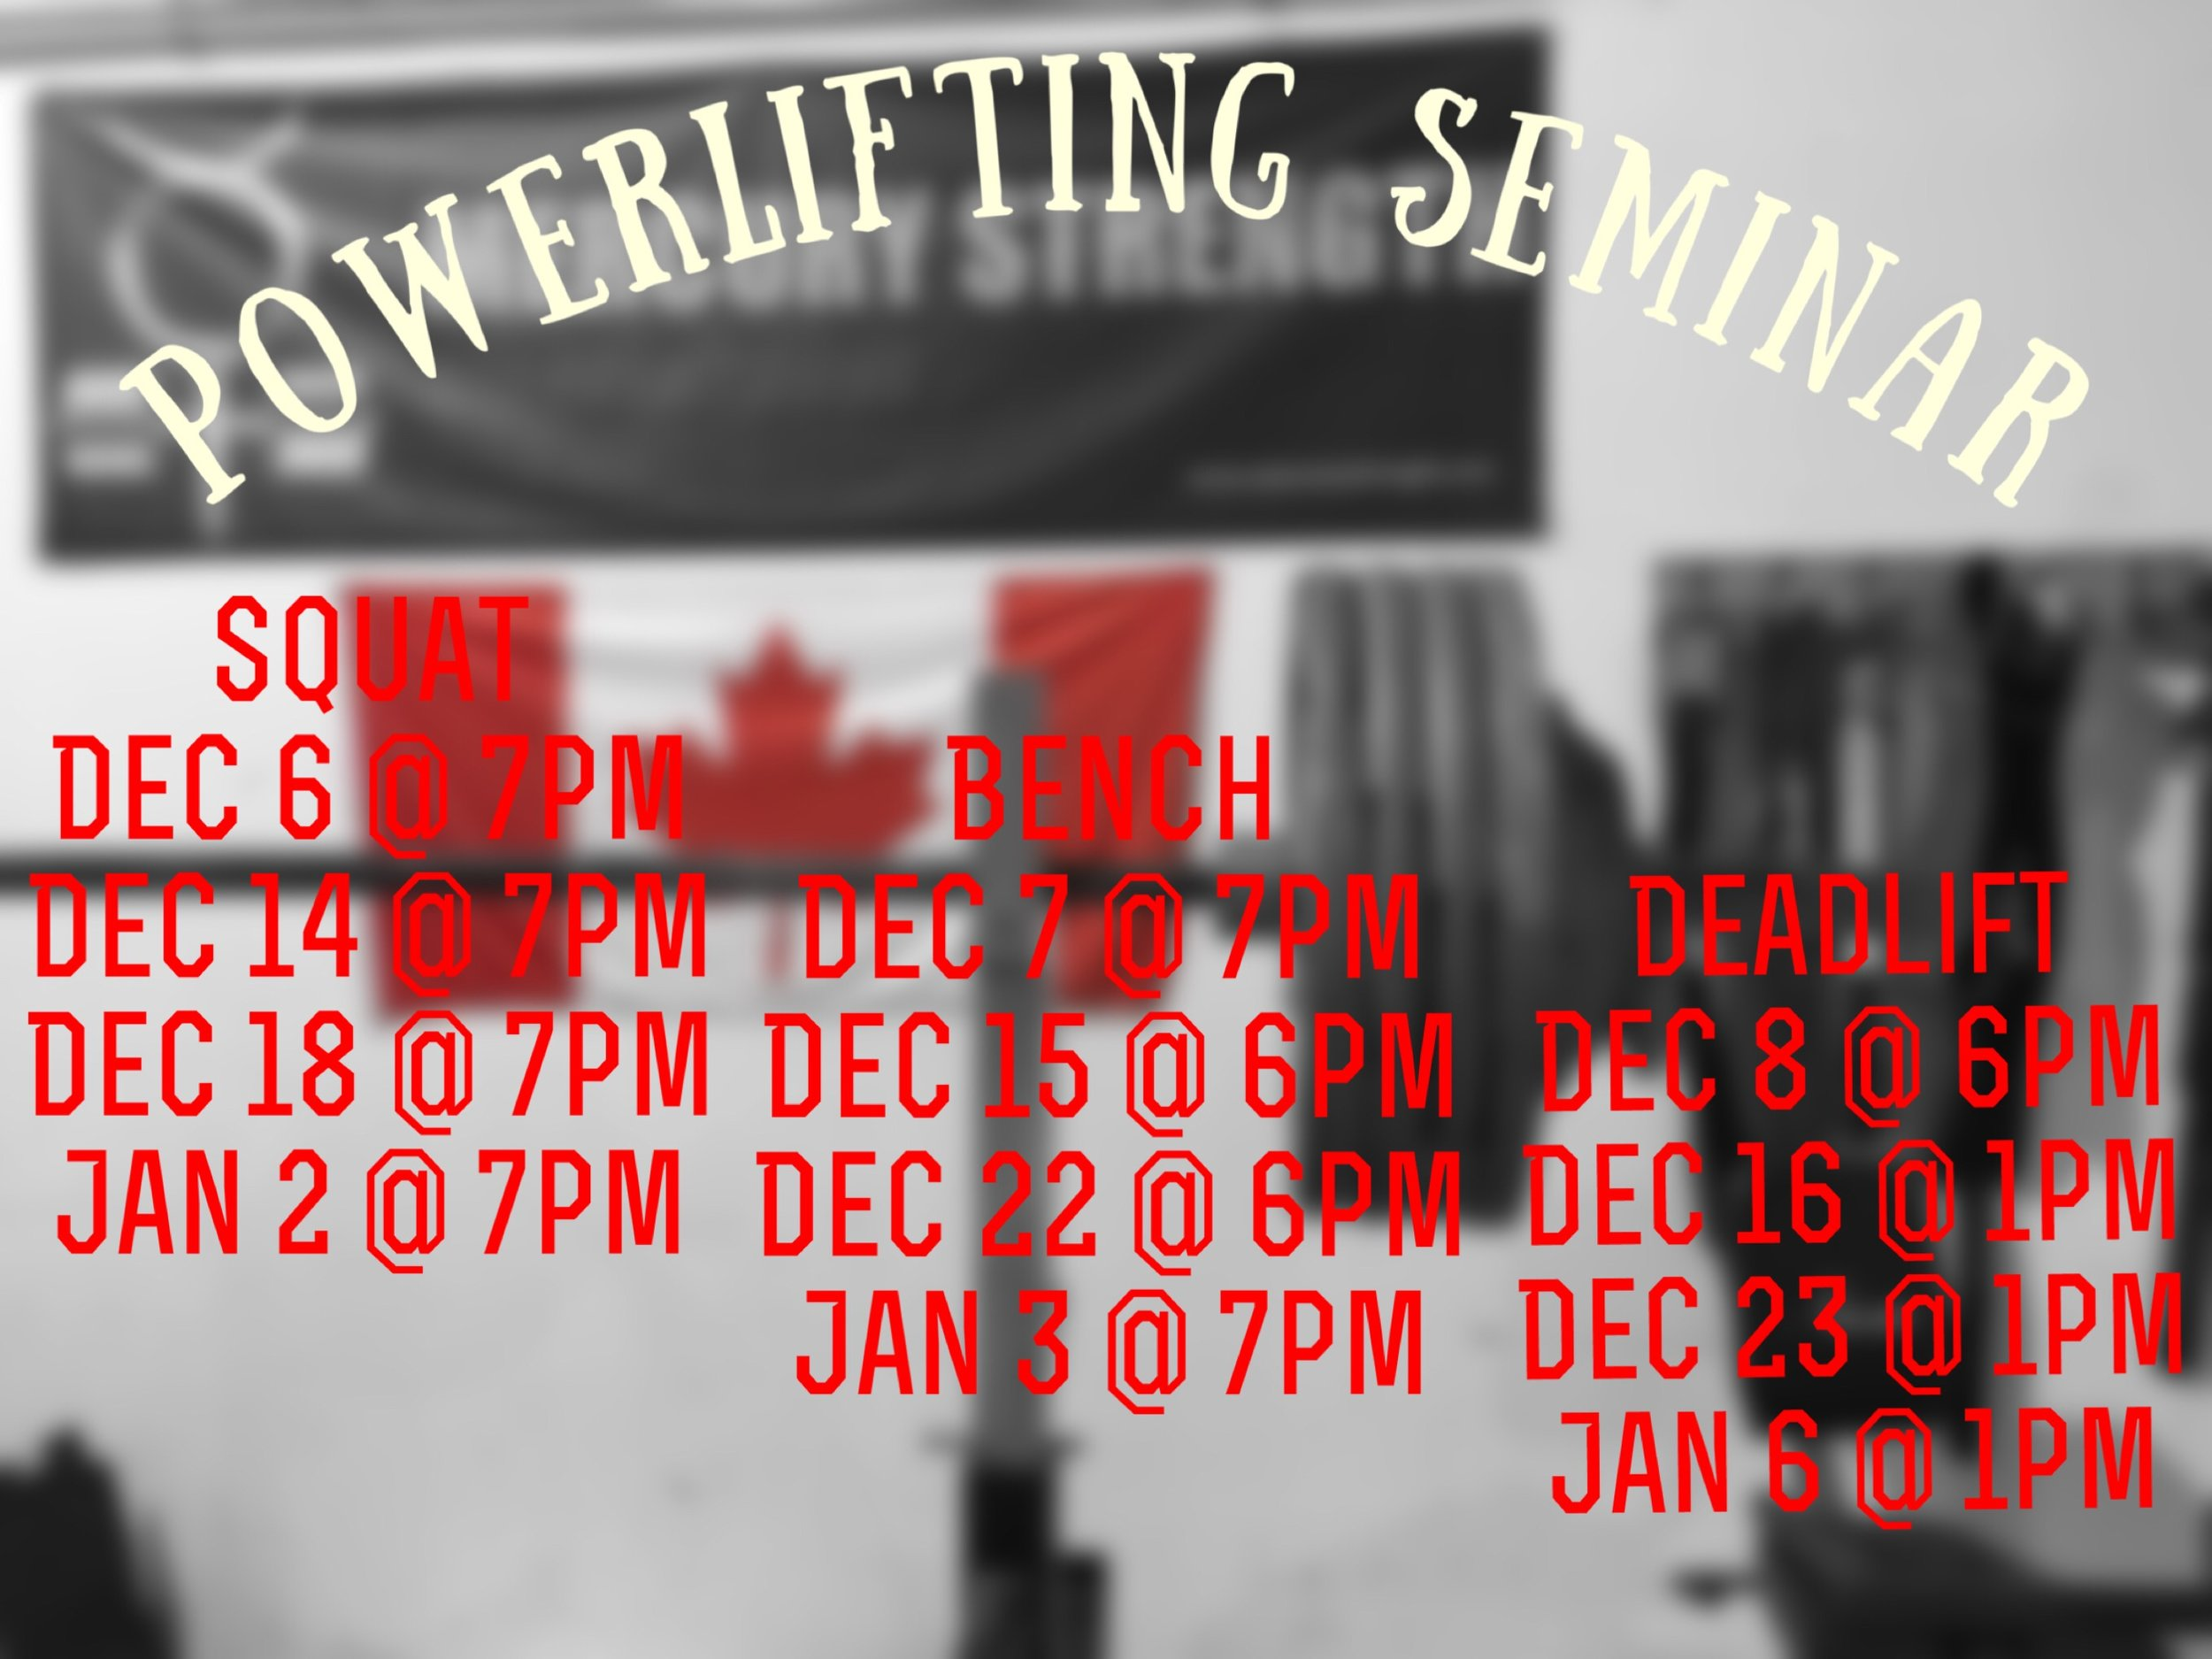 Our Powerlifting Seminar starts tonight at 19:00. $109.99 + HST for ALL sessions. $49.99 + HST per individual lift.